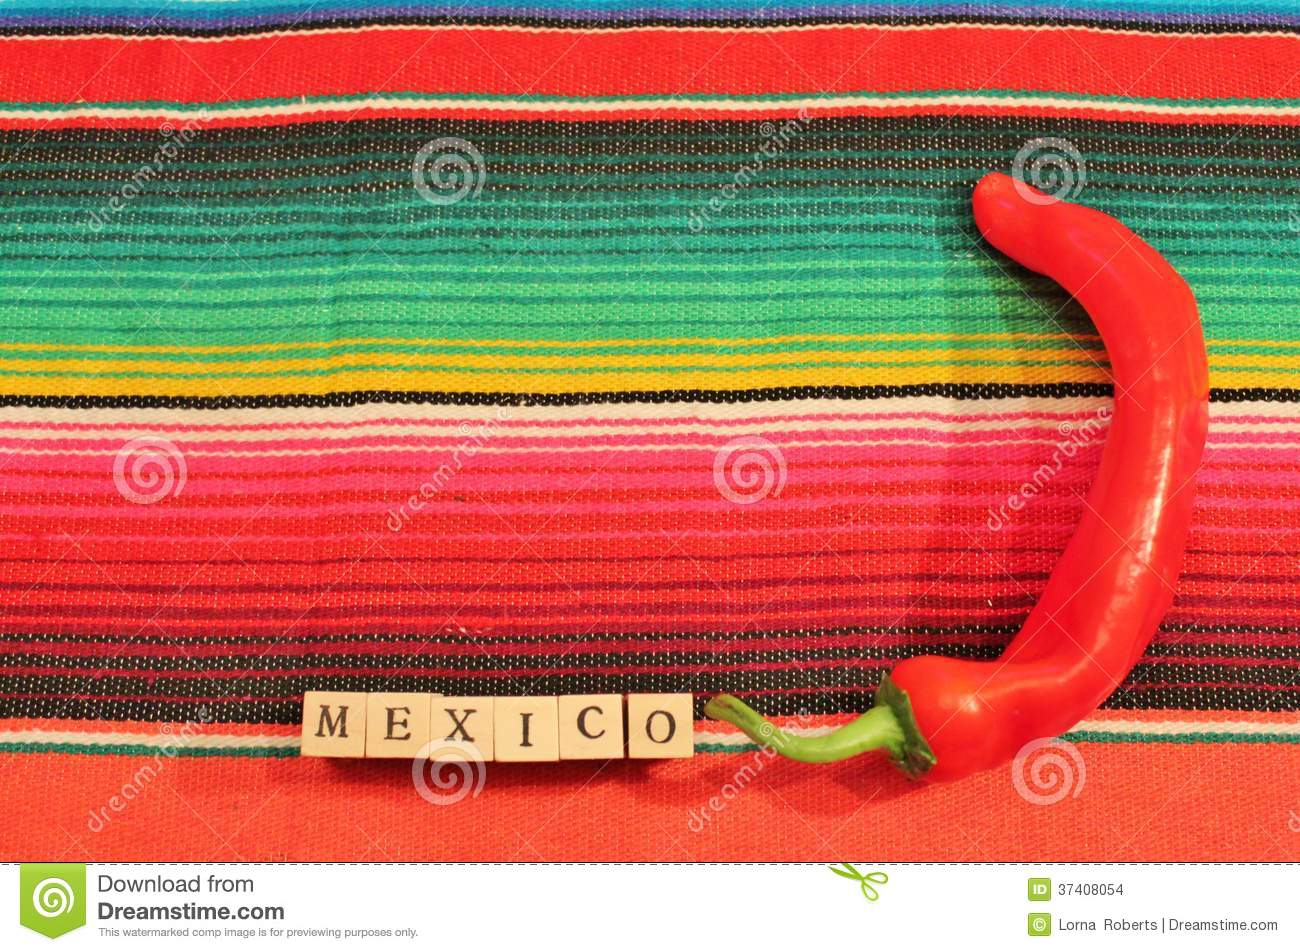 Mexican Colors Backgrounds Mexican fiesta poncho rug wordMexican Colors Background